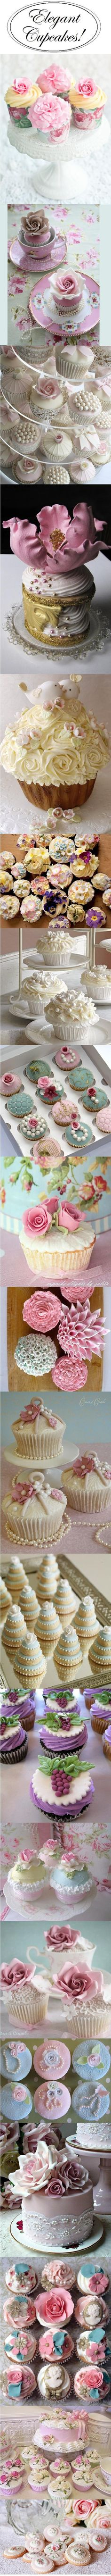 Elegant Cup Cakes. These are gorgeous!